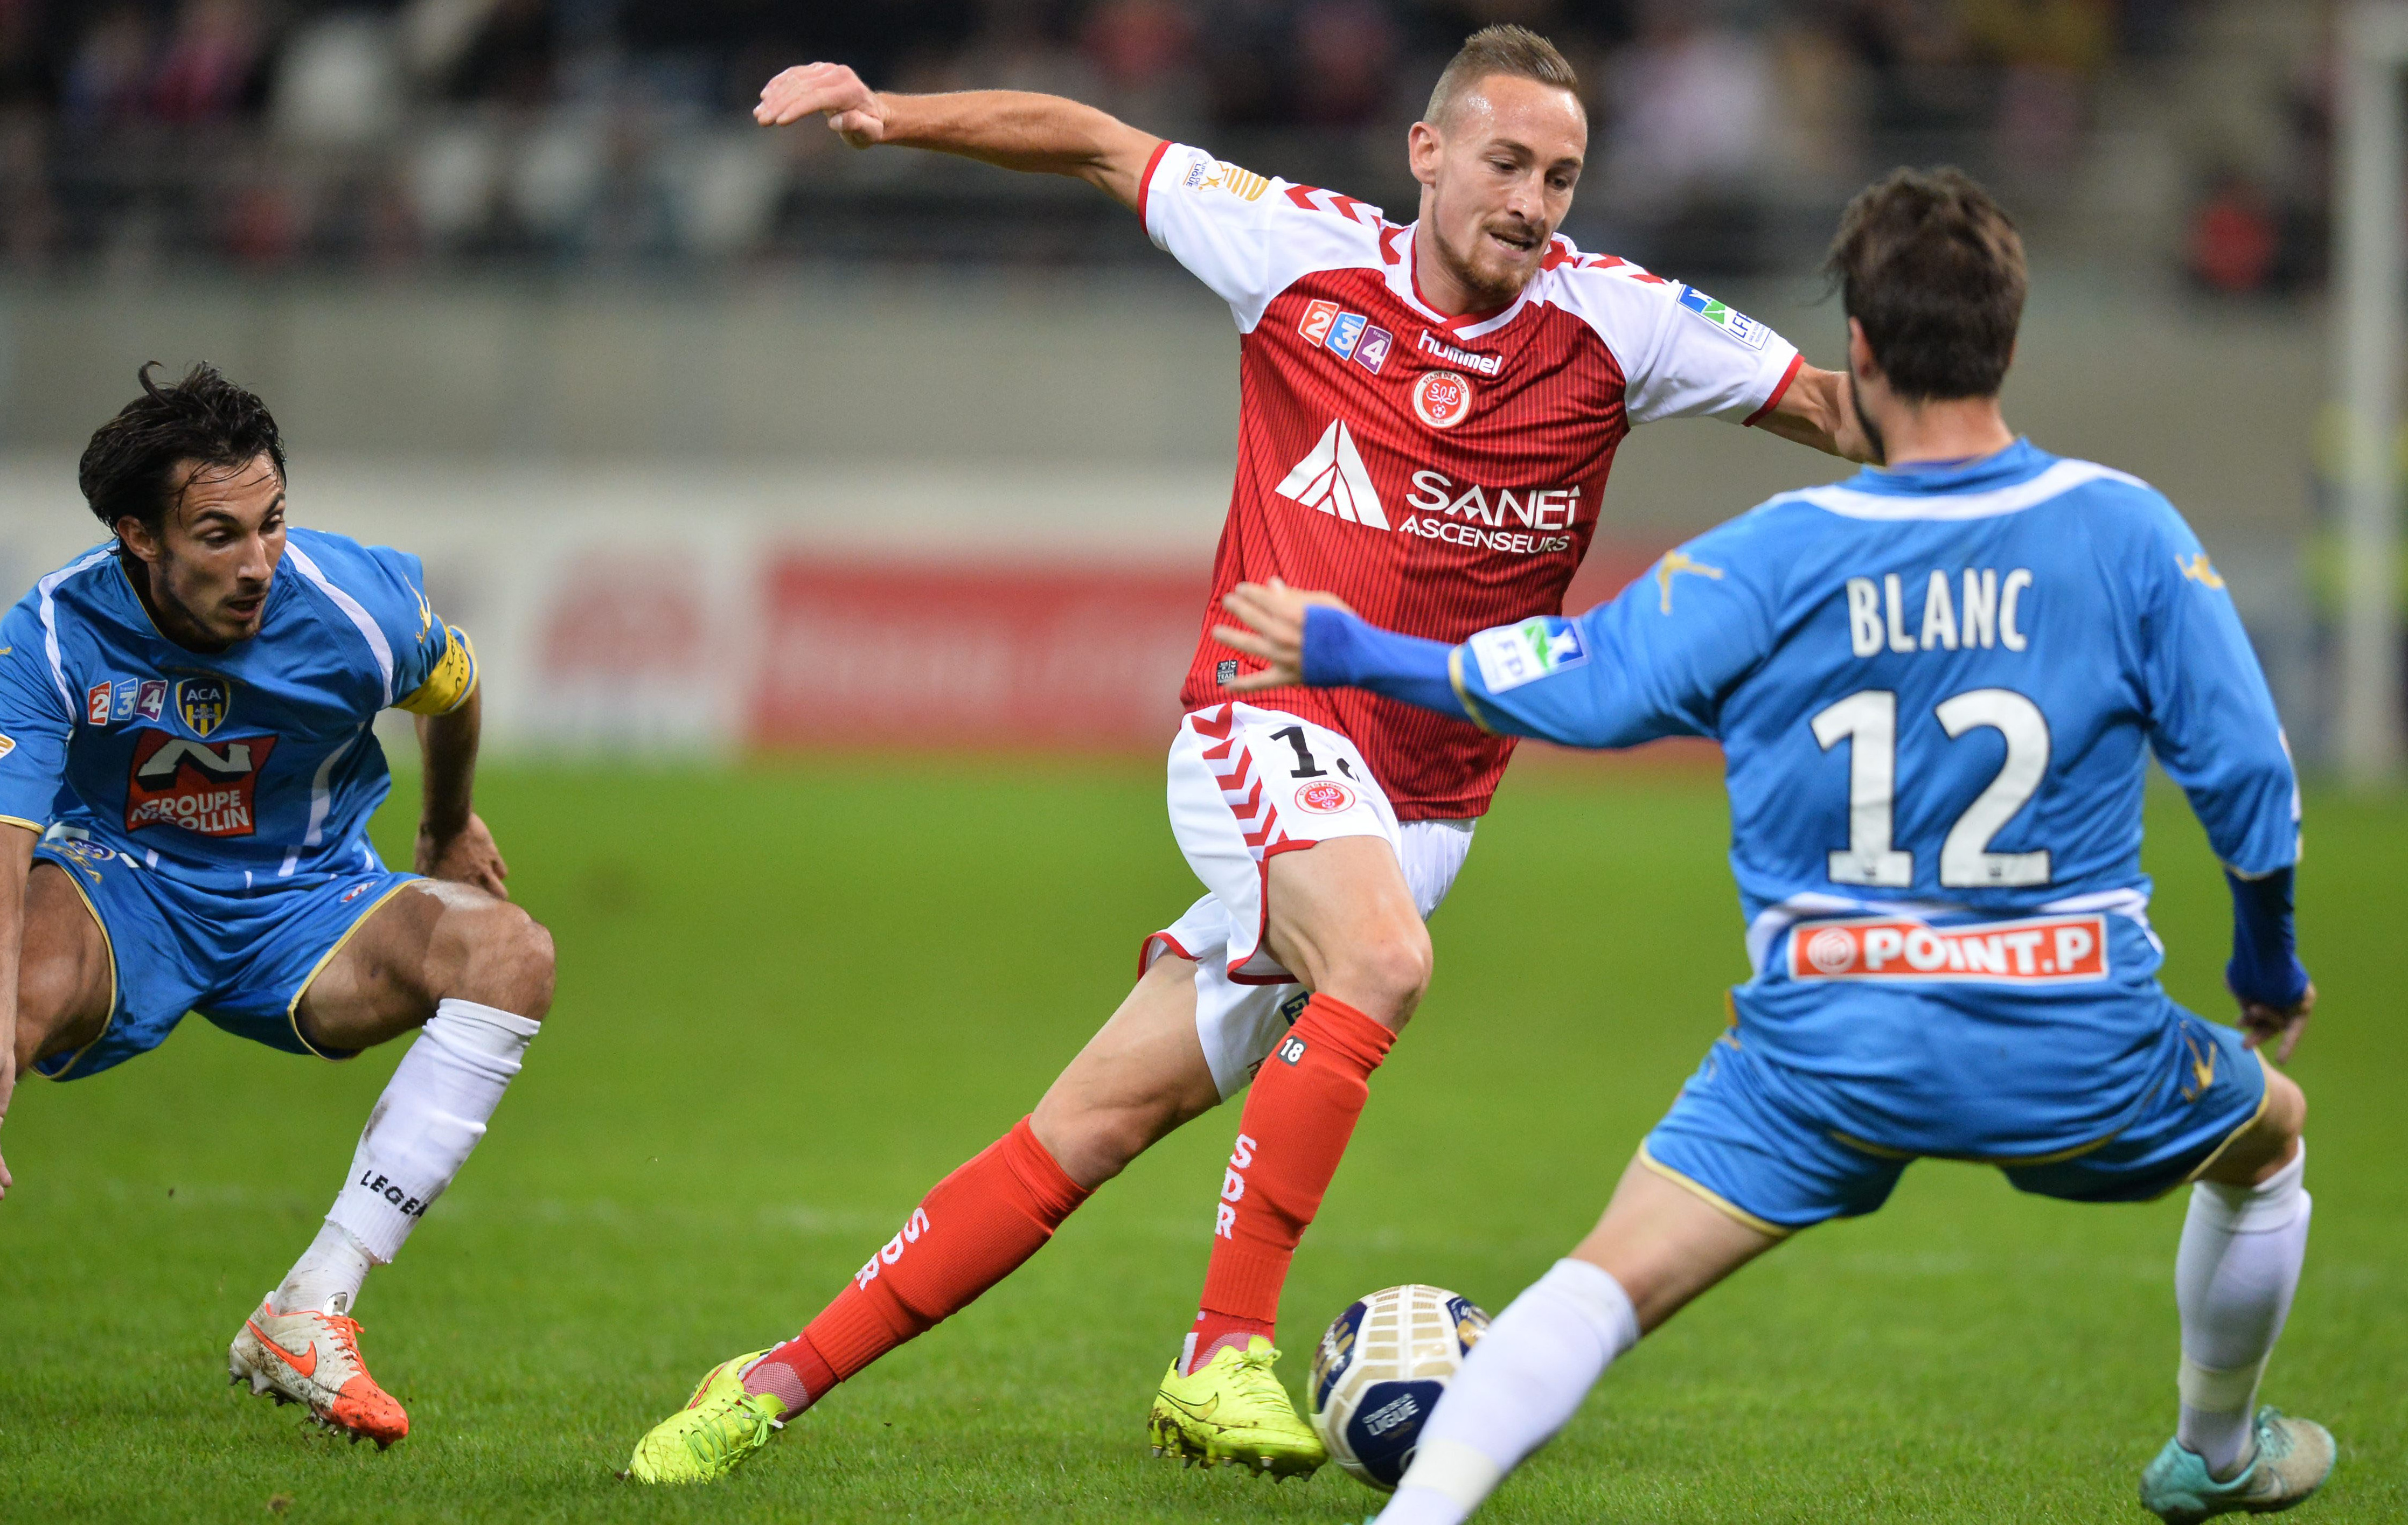 La coupe de la ligue en direct coupe de la ligue football - Resultat coupe de la ligue en direct ...